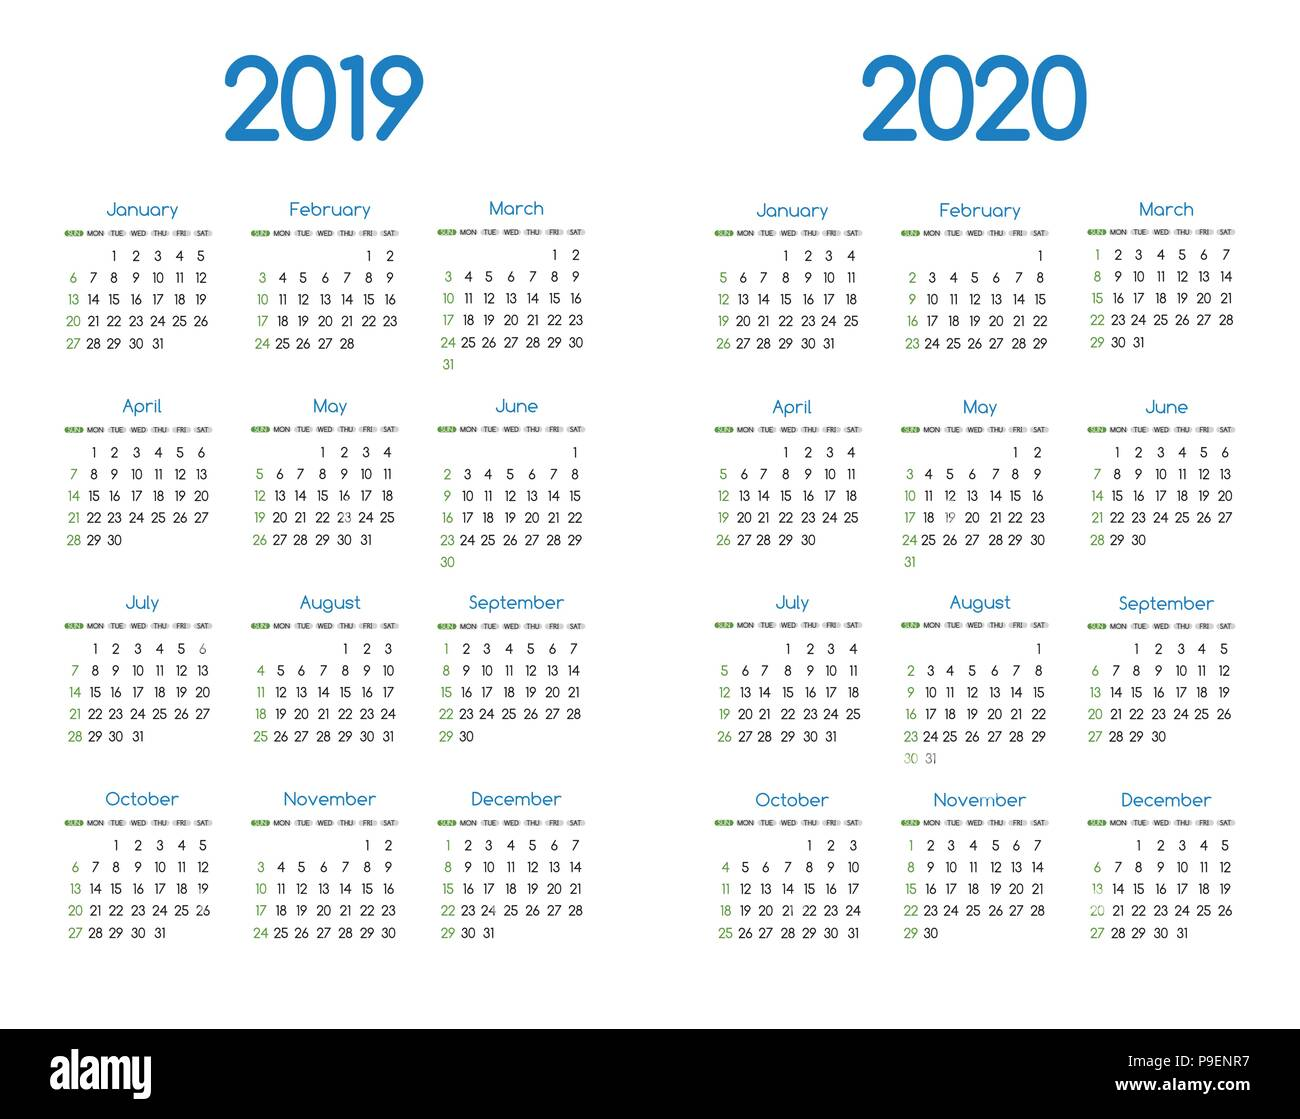 2020 Events Calendar New year 2019 and 2020 vector calendar modern simple design with